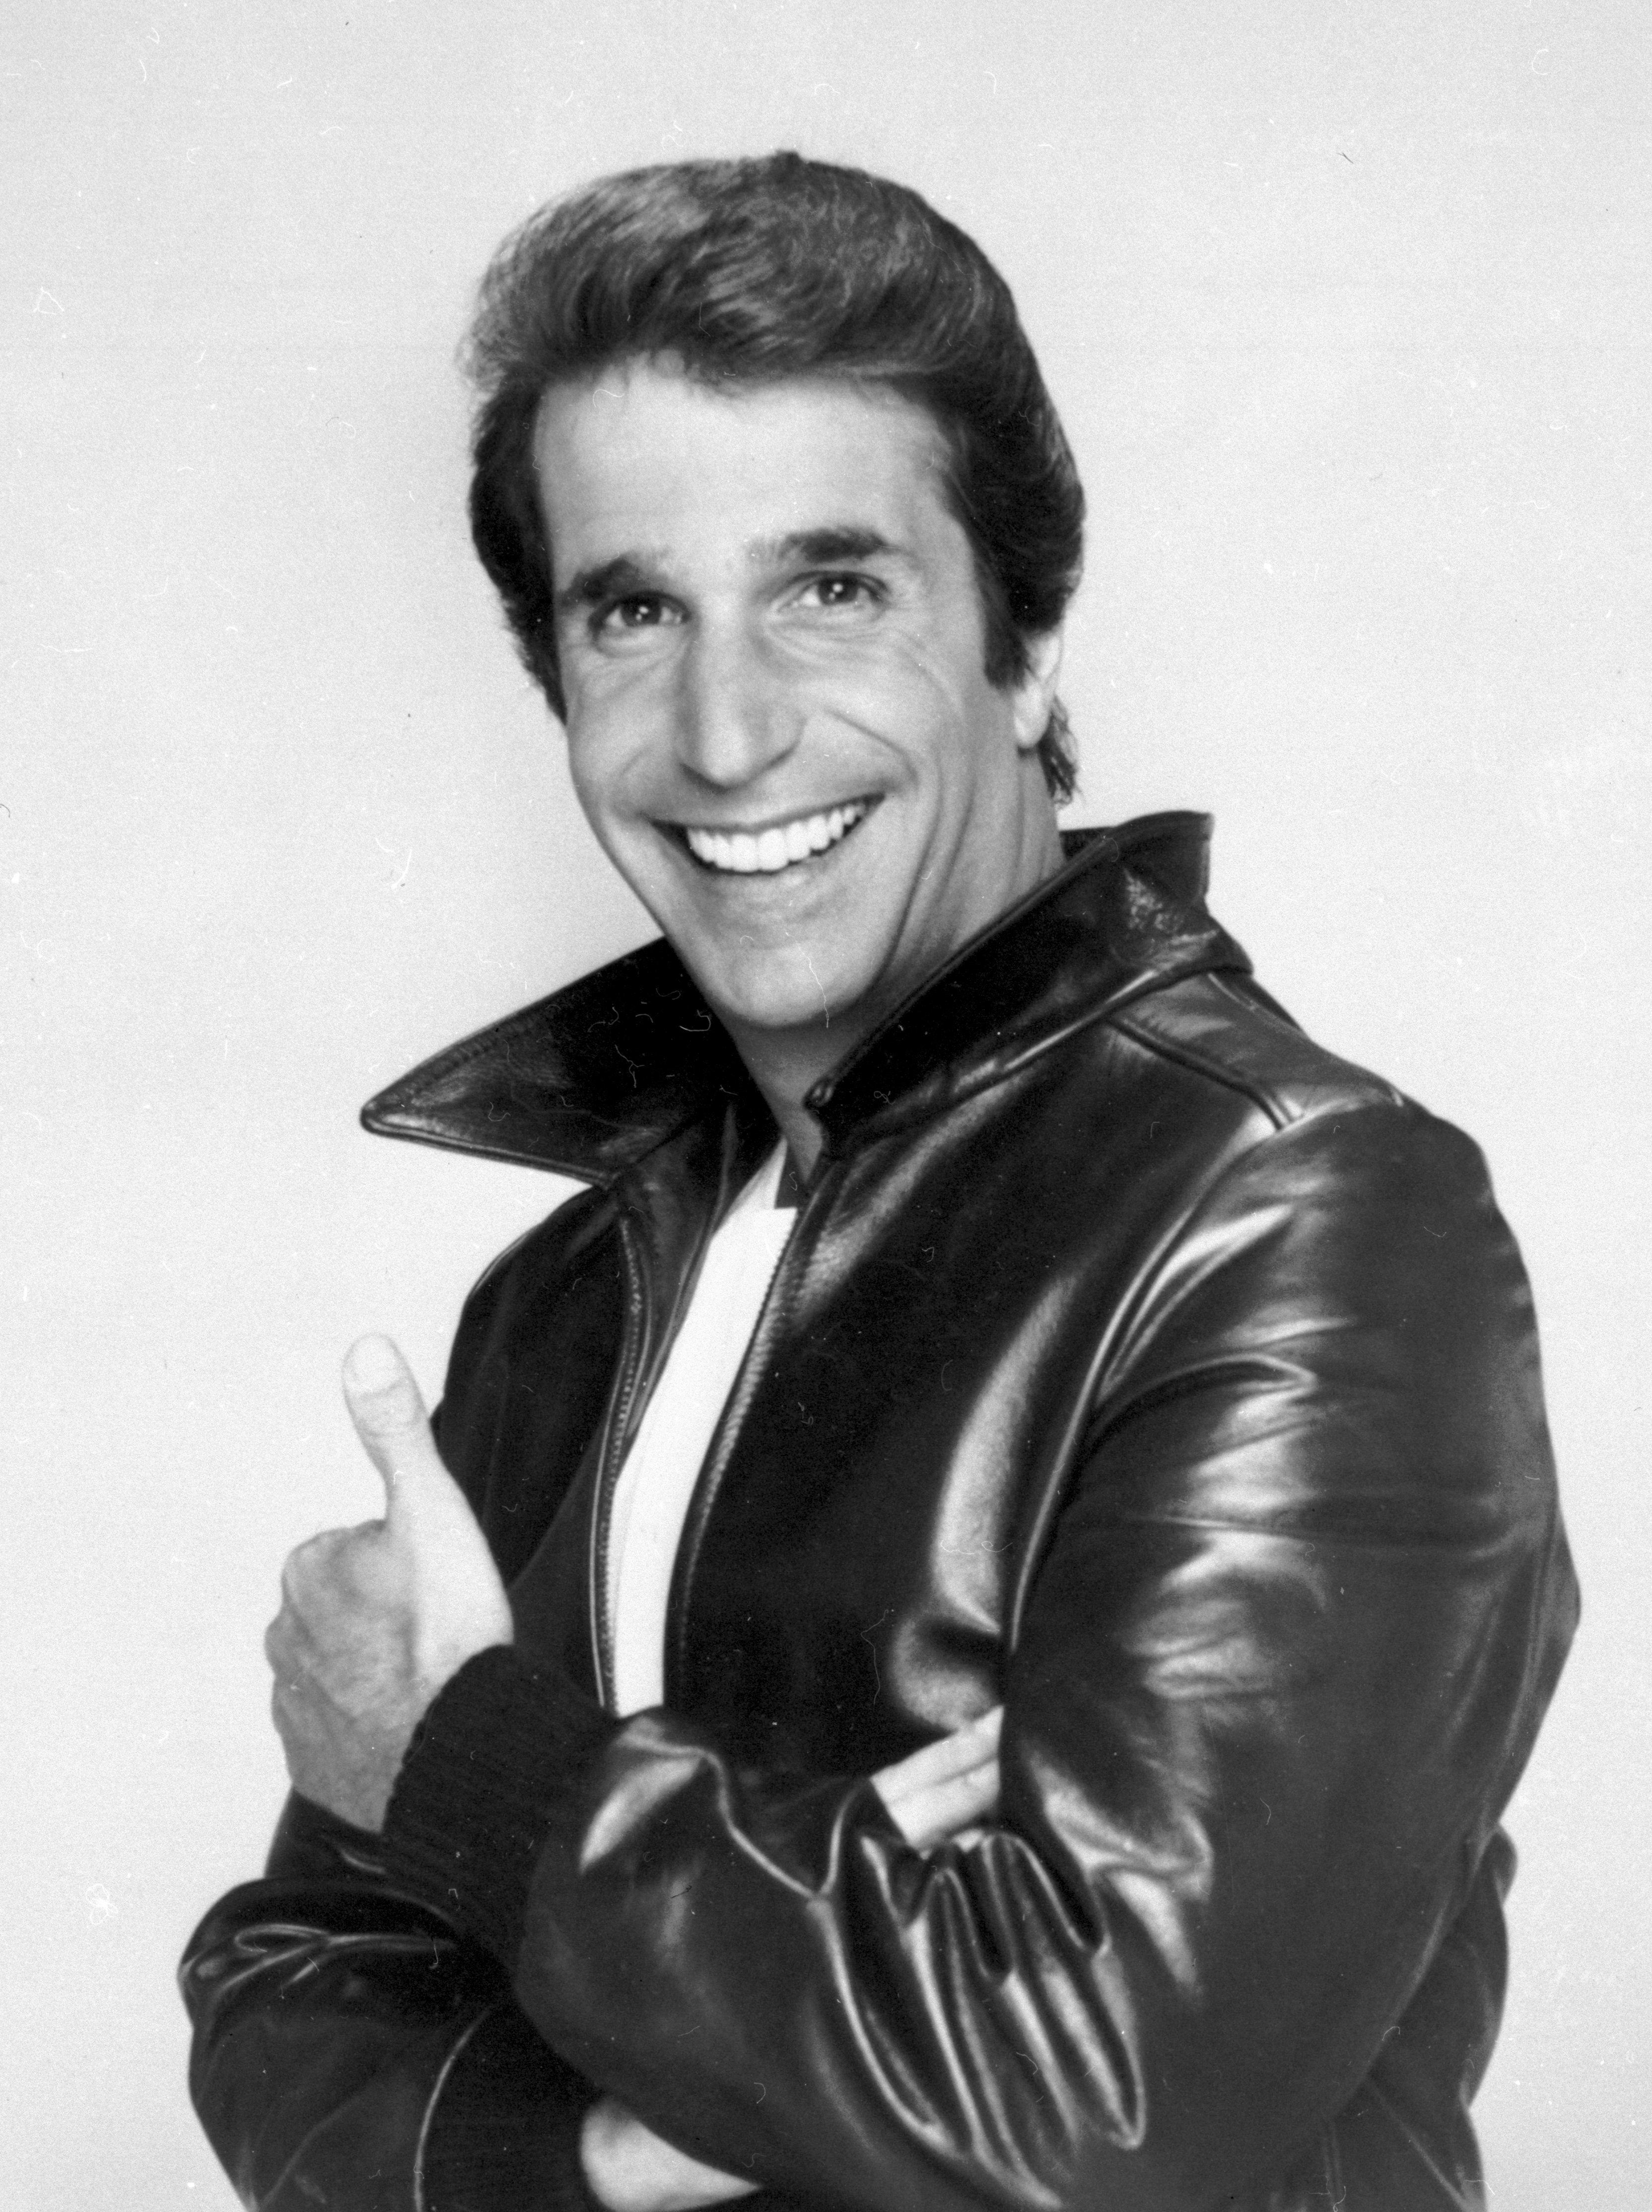 """FILE-This file photo from 1984 shows Henry Winkler as """"The Fonz"""". If your TV has hovered even a second on MTV these past few weeks, you've most likely caught the men of the reality show """"Jersey Shore"""" pimping their version of extreme masculinity: big muscles, big tans and big fights. The fellas, all tied together by their Italian-American ancestry, try to pass themselves off as this decade's answer to the Italian stallion. But really, how do they measure up to TV's ultimate Italian lover, Arthur """"The Fonz"""" Fonzarelli of """"Happy Days""""? (AP Photo/File)"""